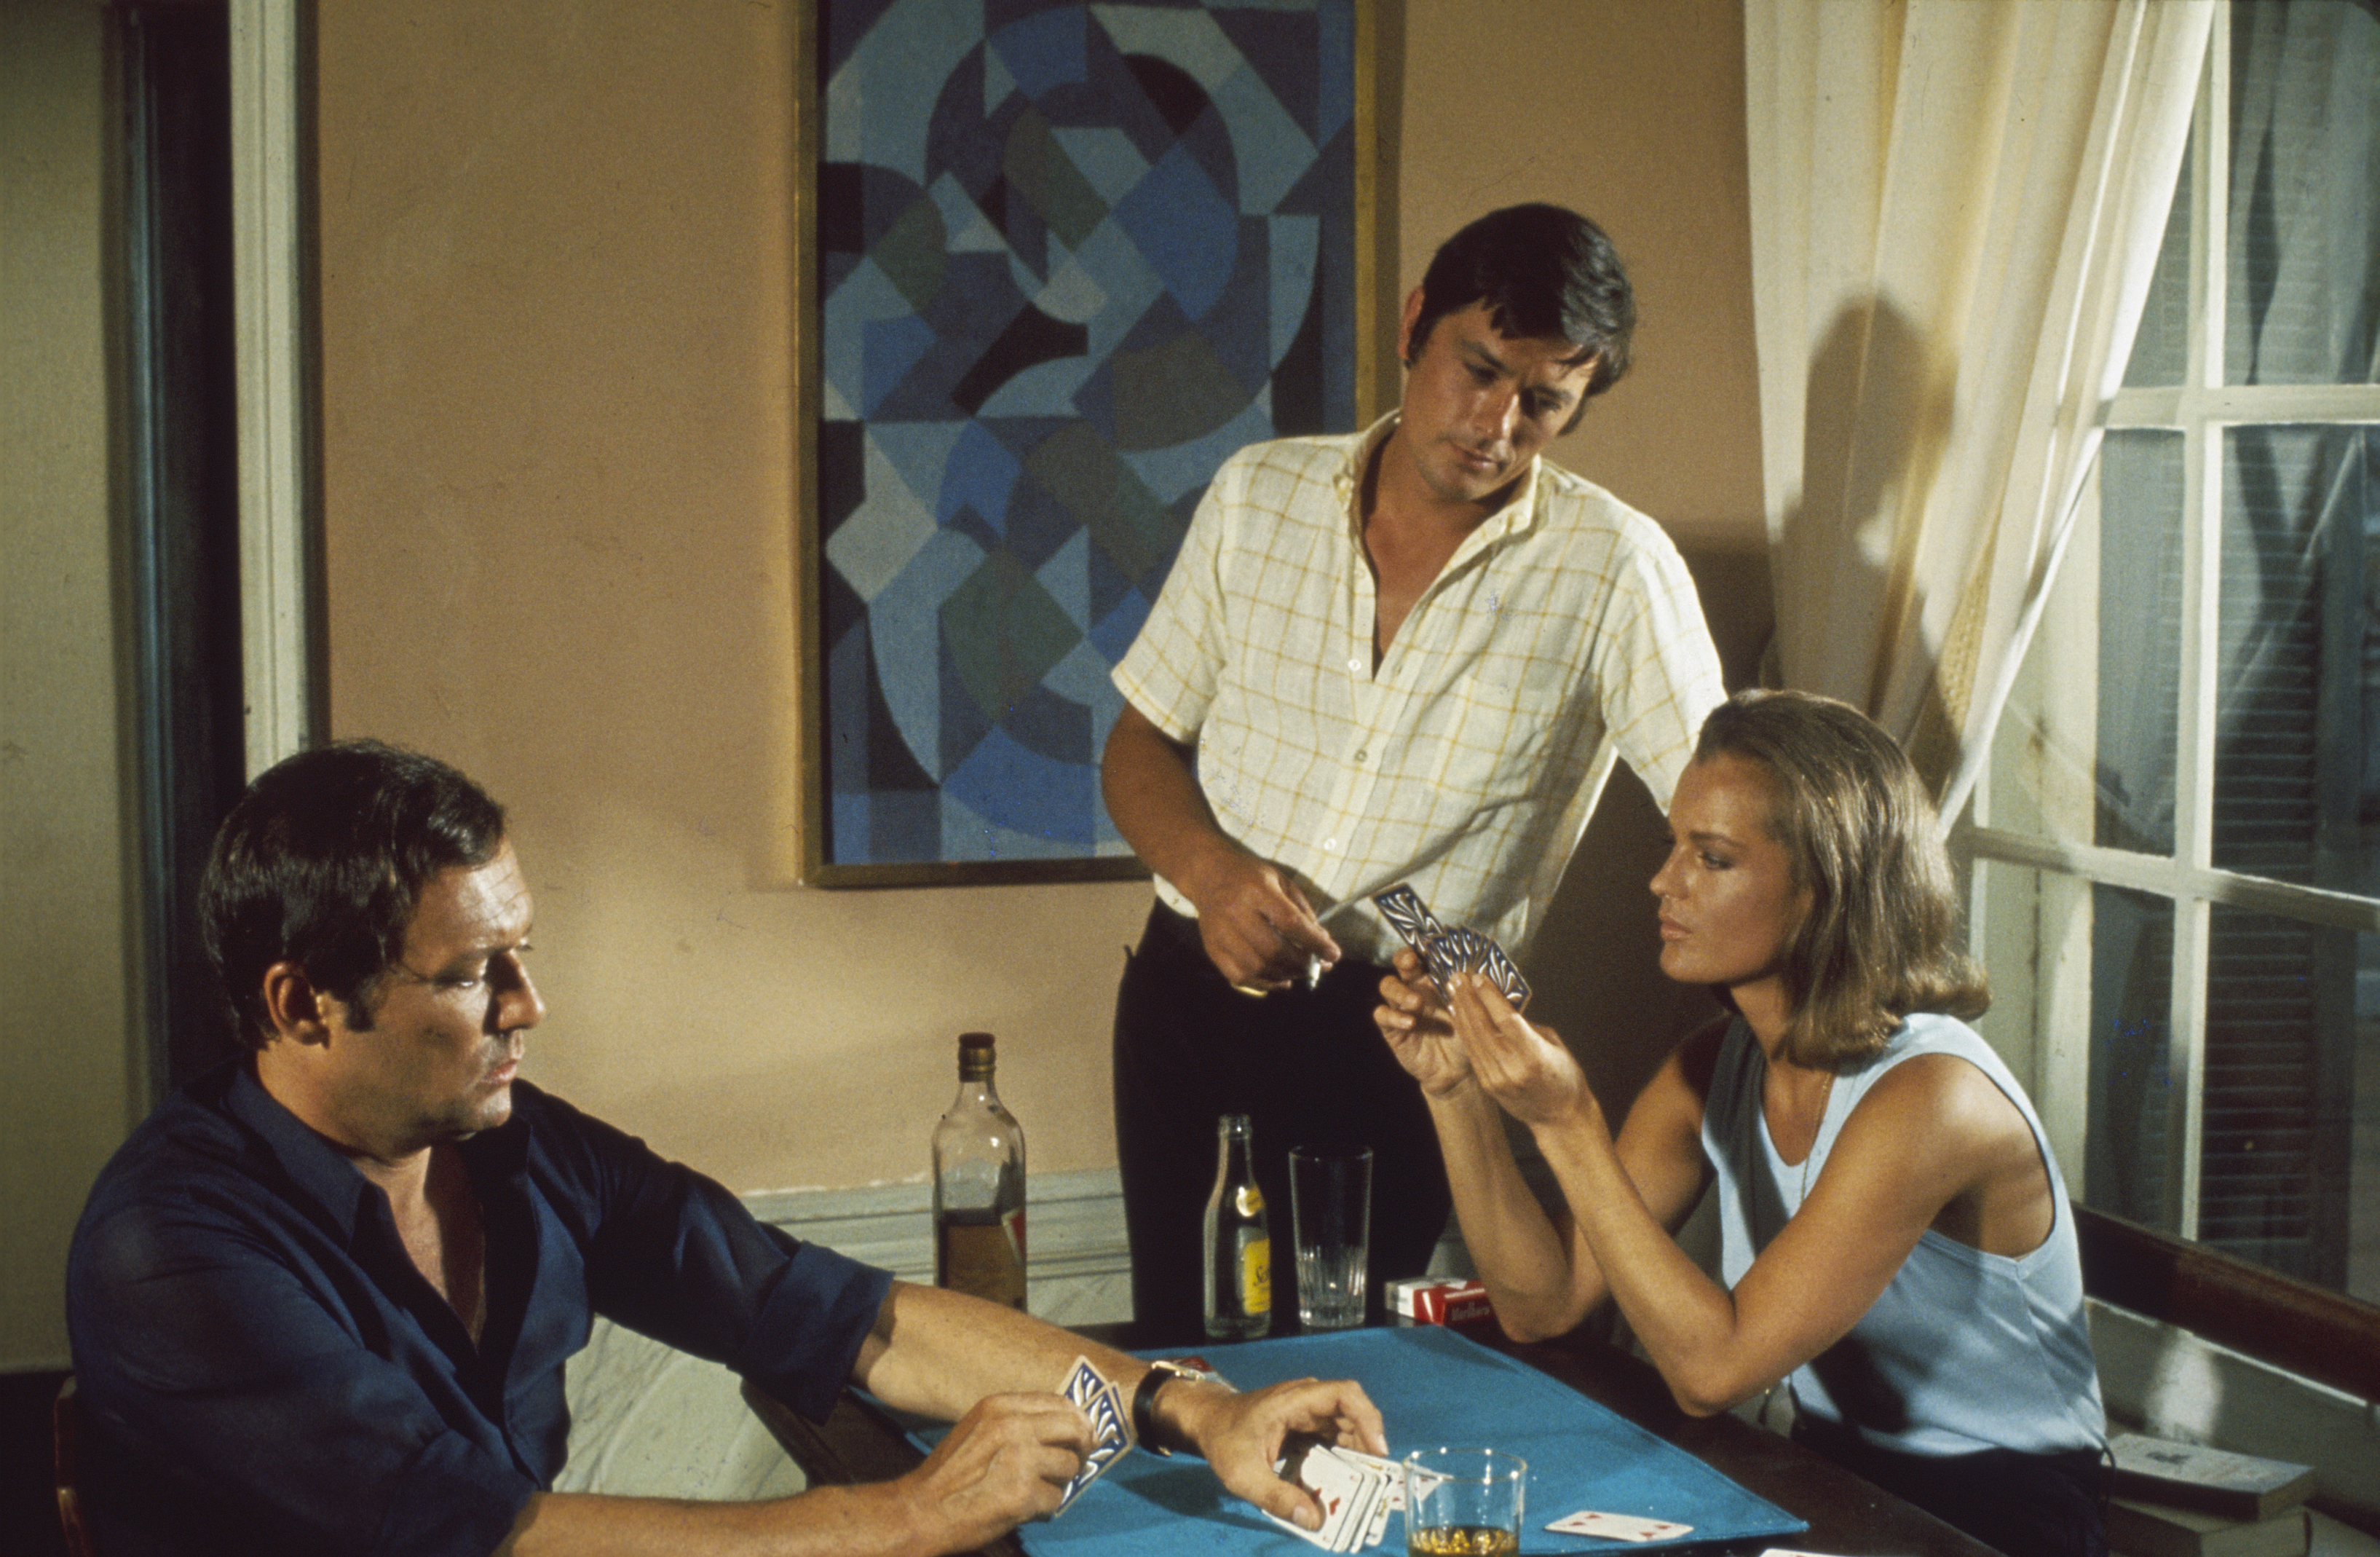 La piscine de jacques deray olivier p re for Alain delon romy schneider la piscine